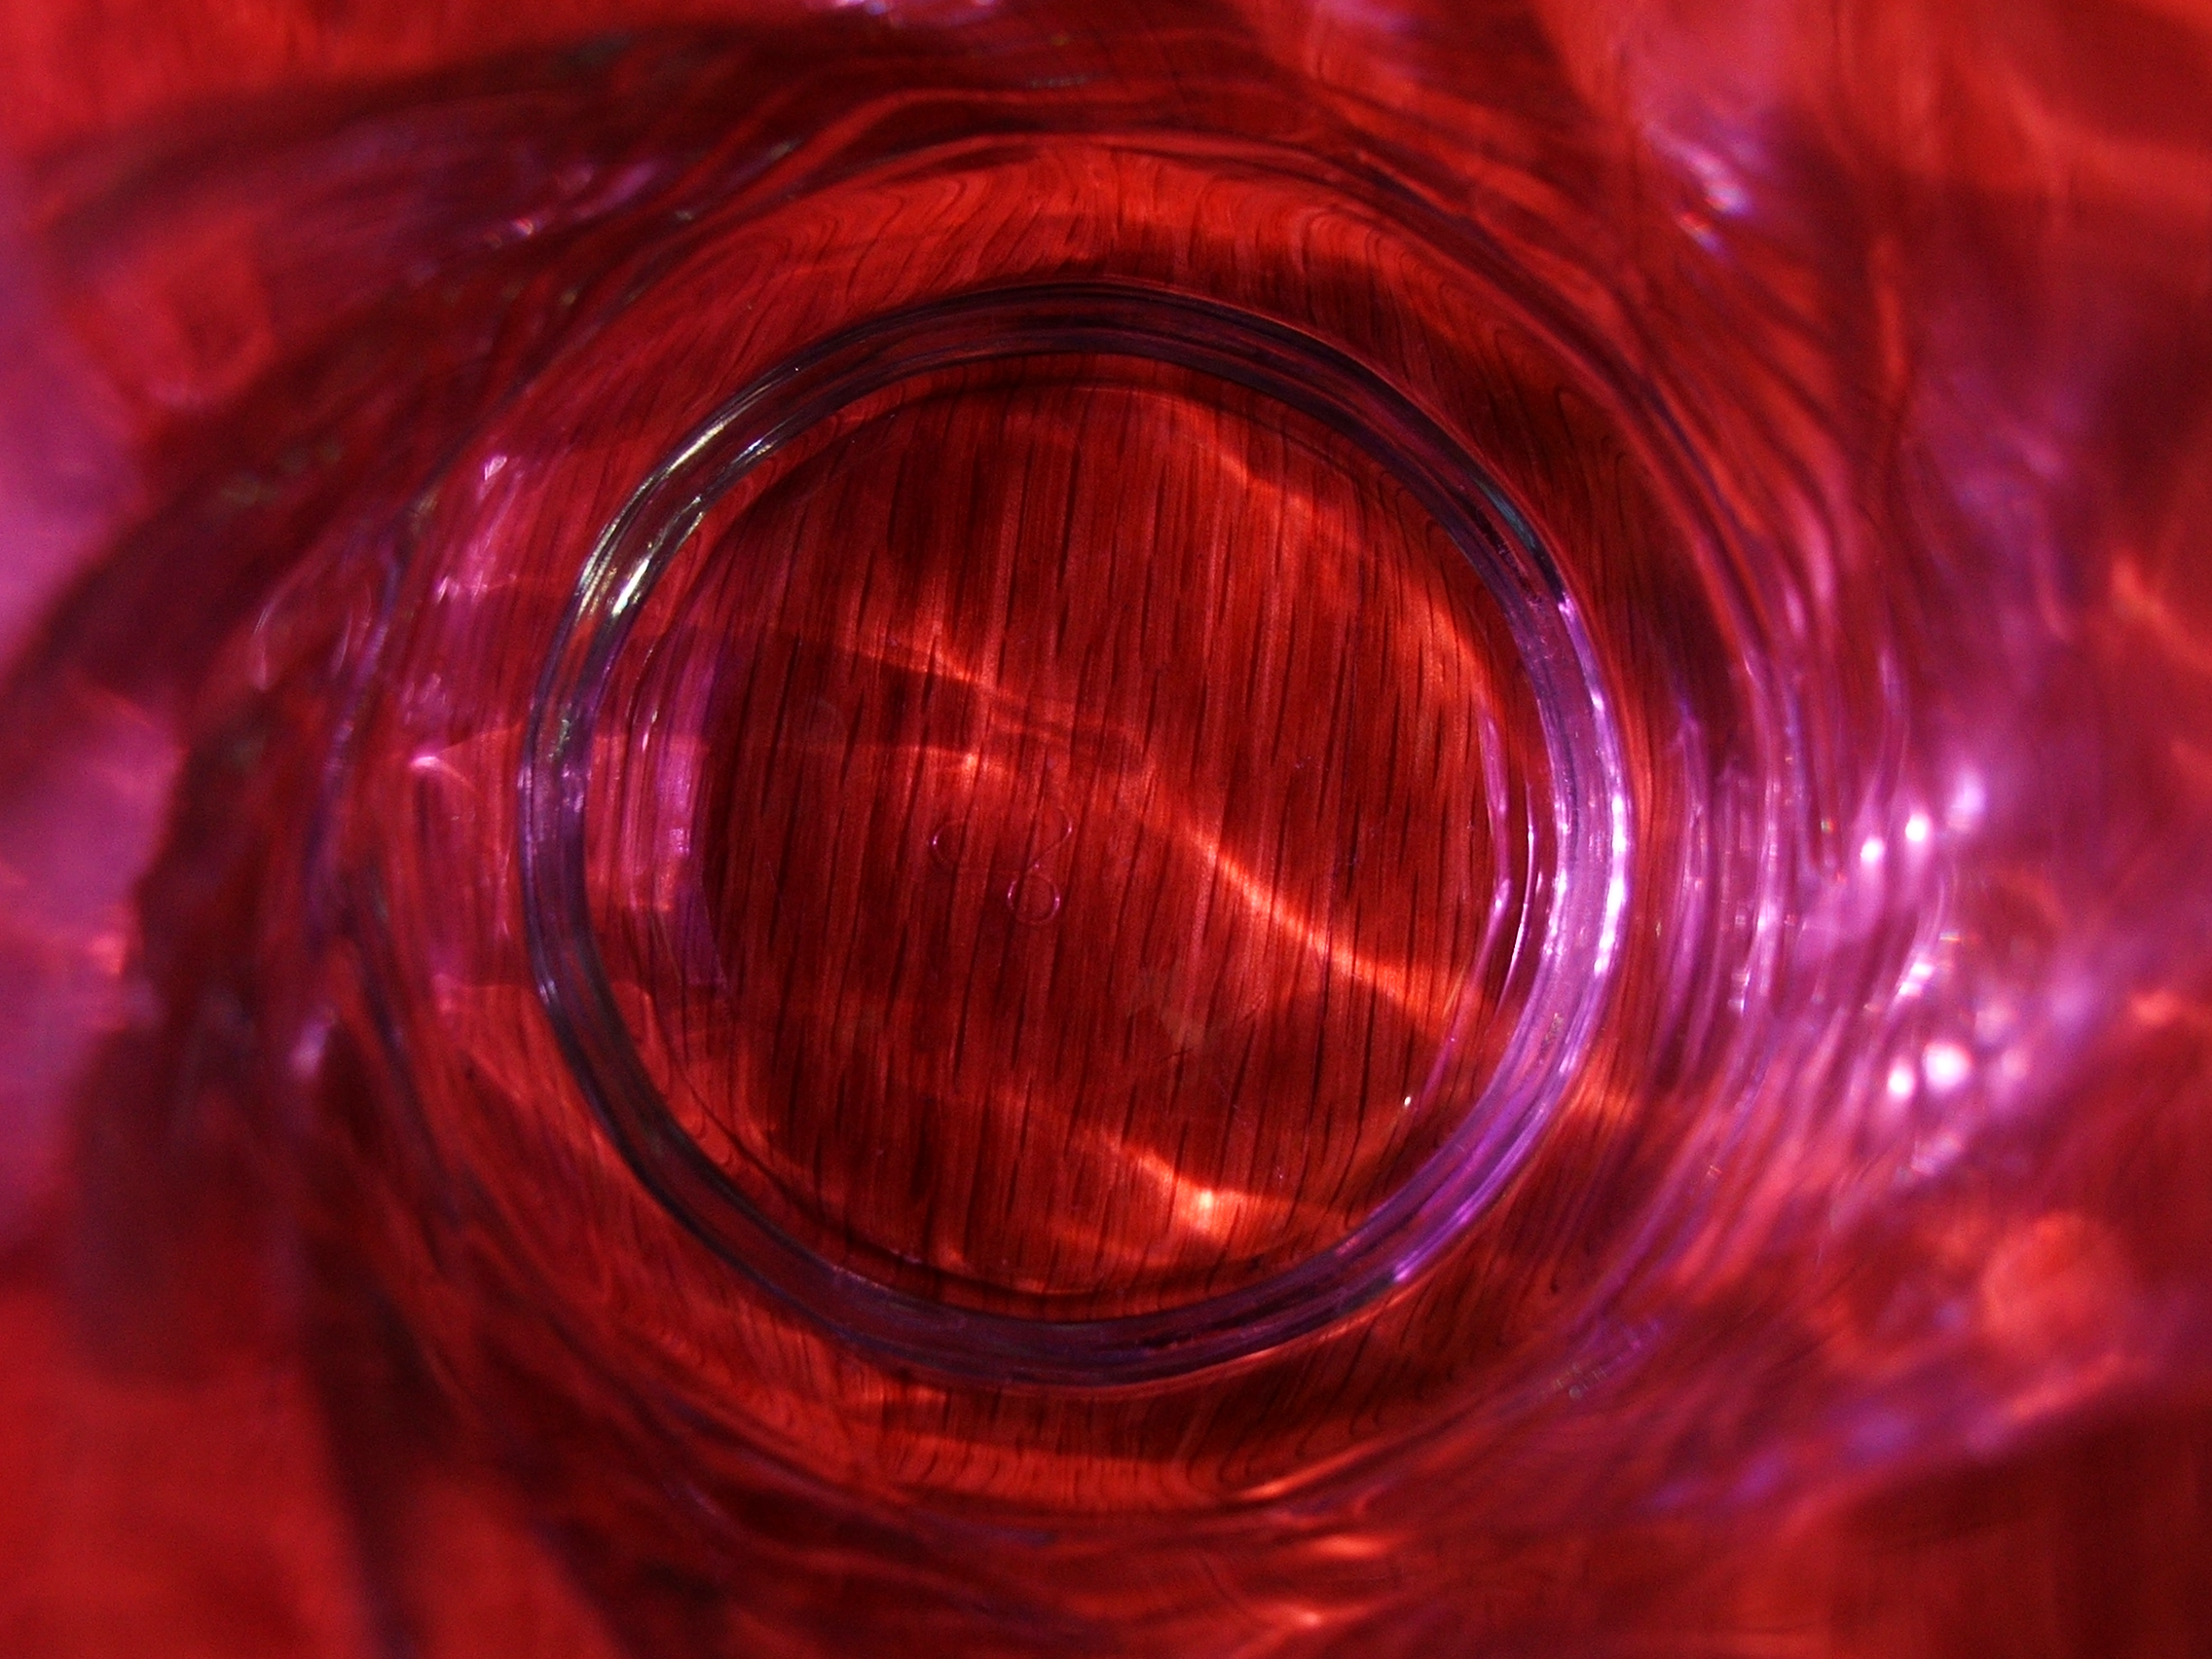 Abstract glass photo